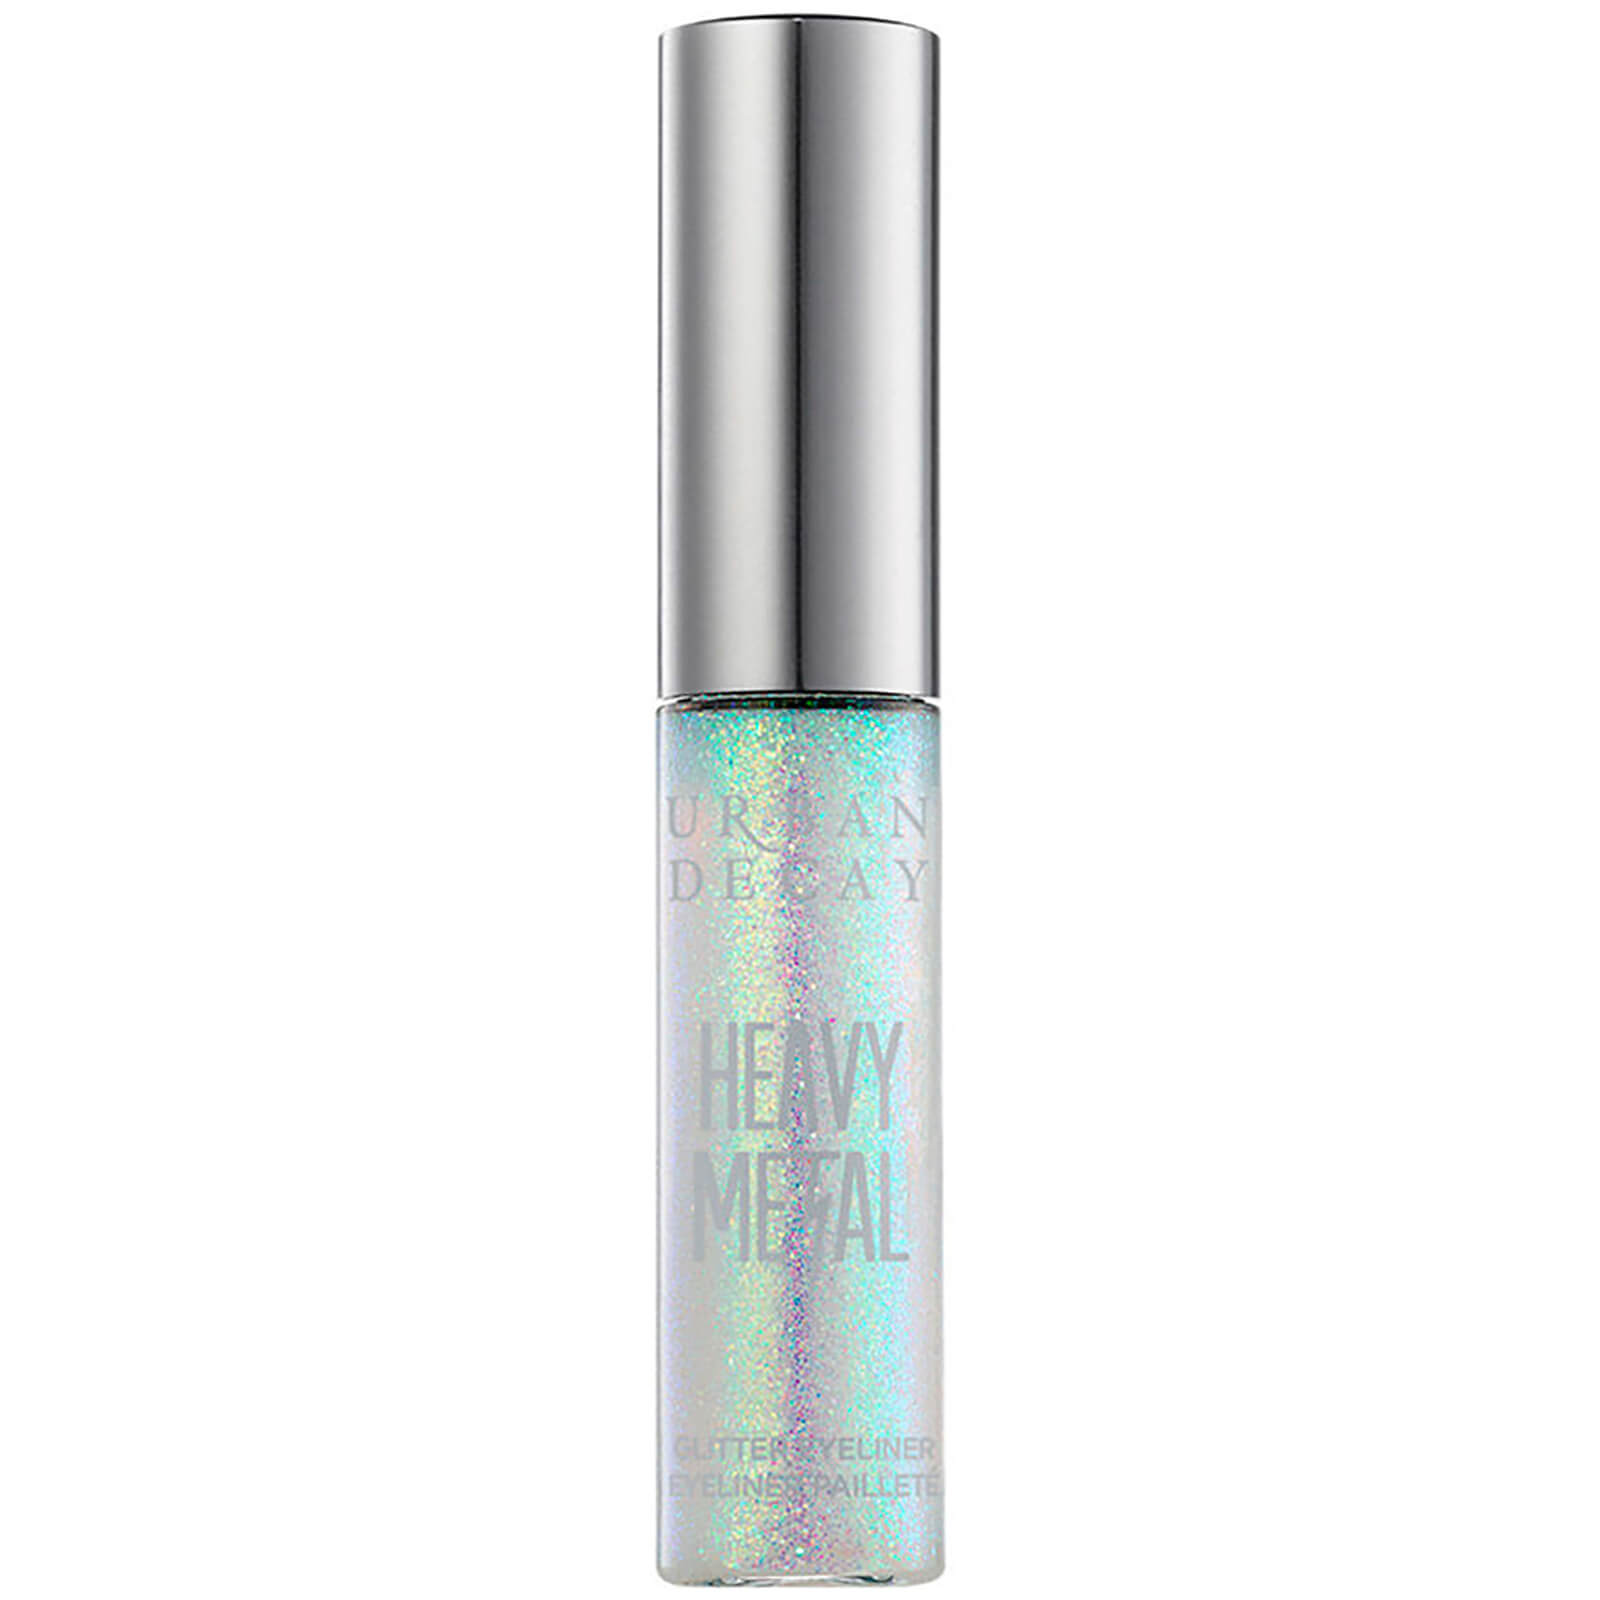 Urban Decay Heavy Metal Glitter Liner - Distortion